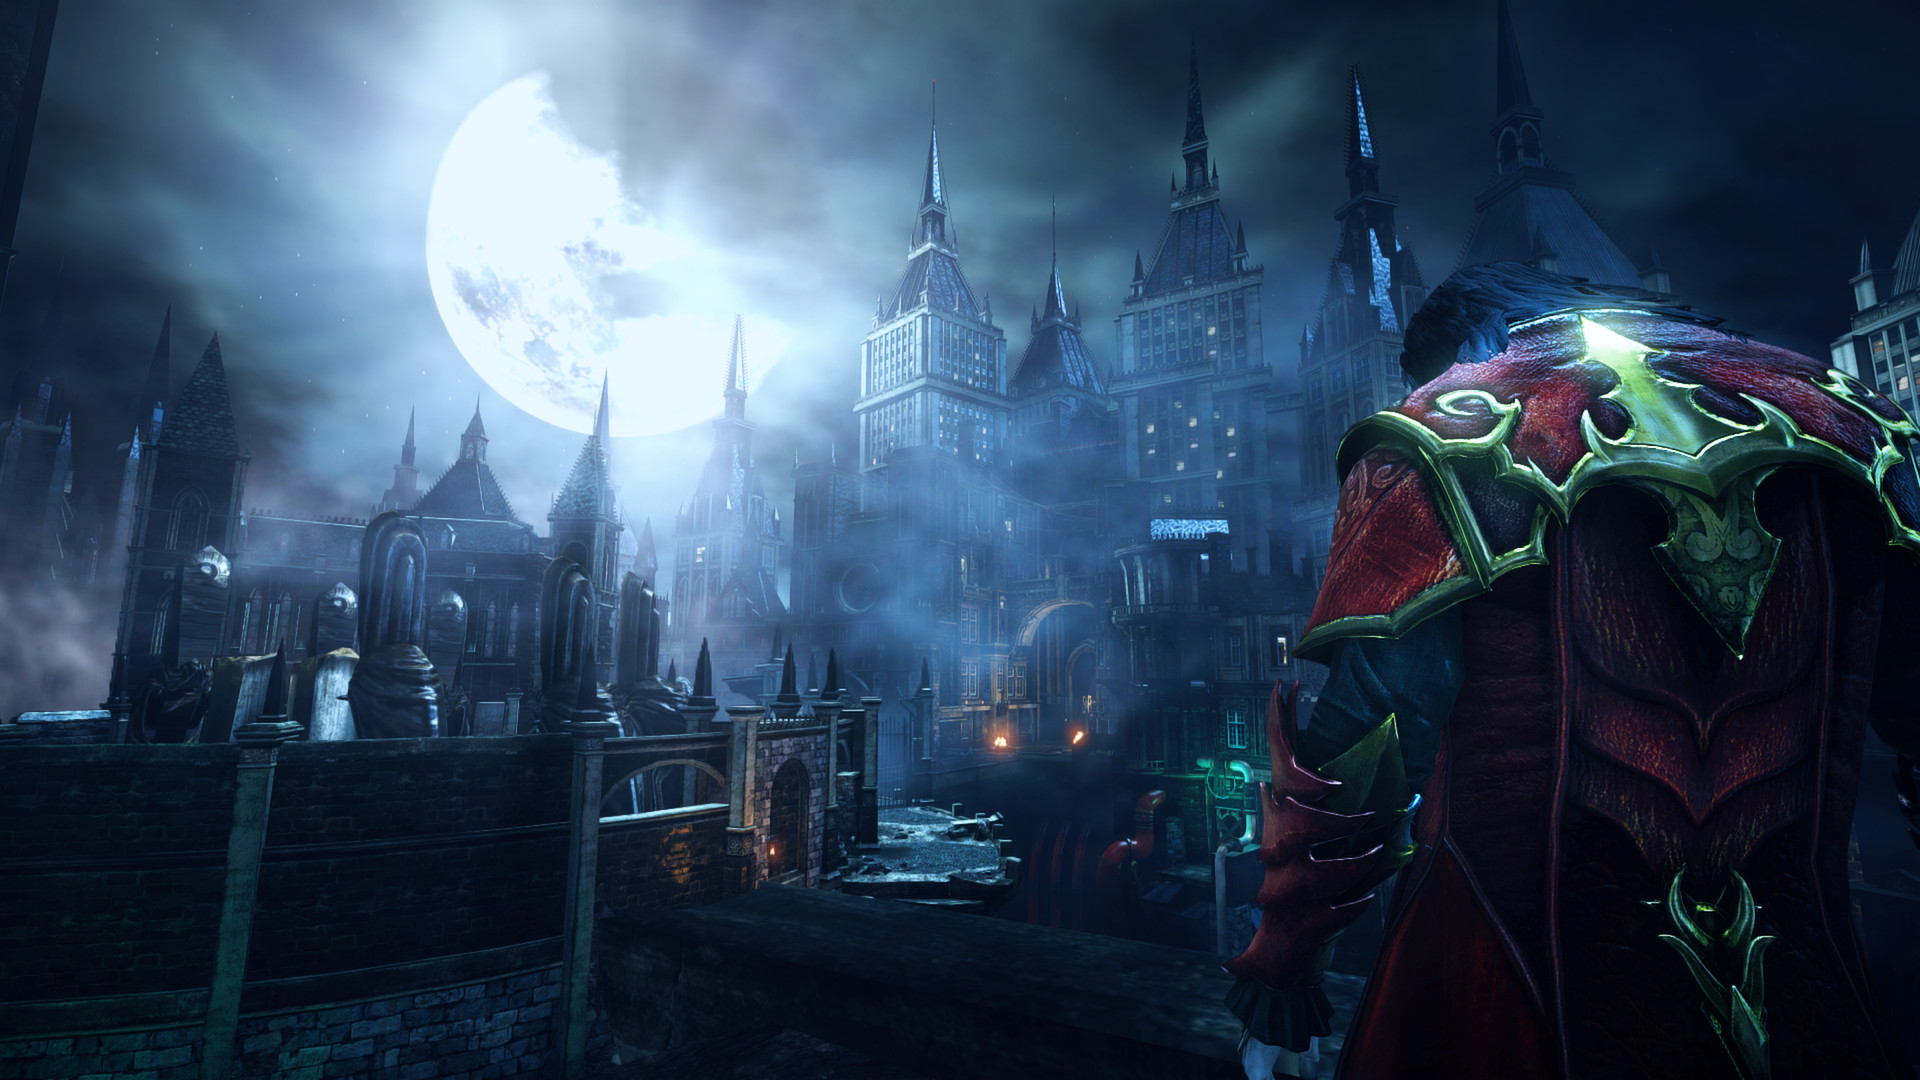 Castlevania: Lords of Shadow 2 image 3